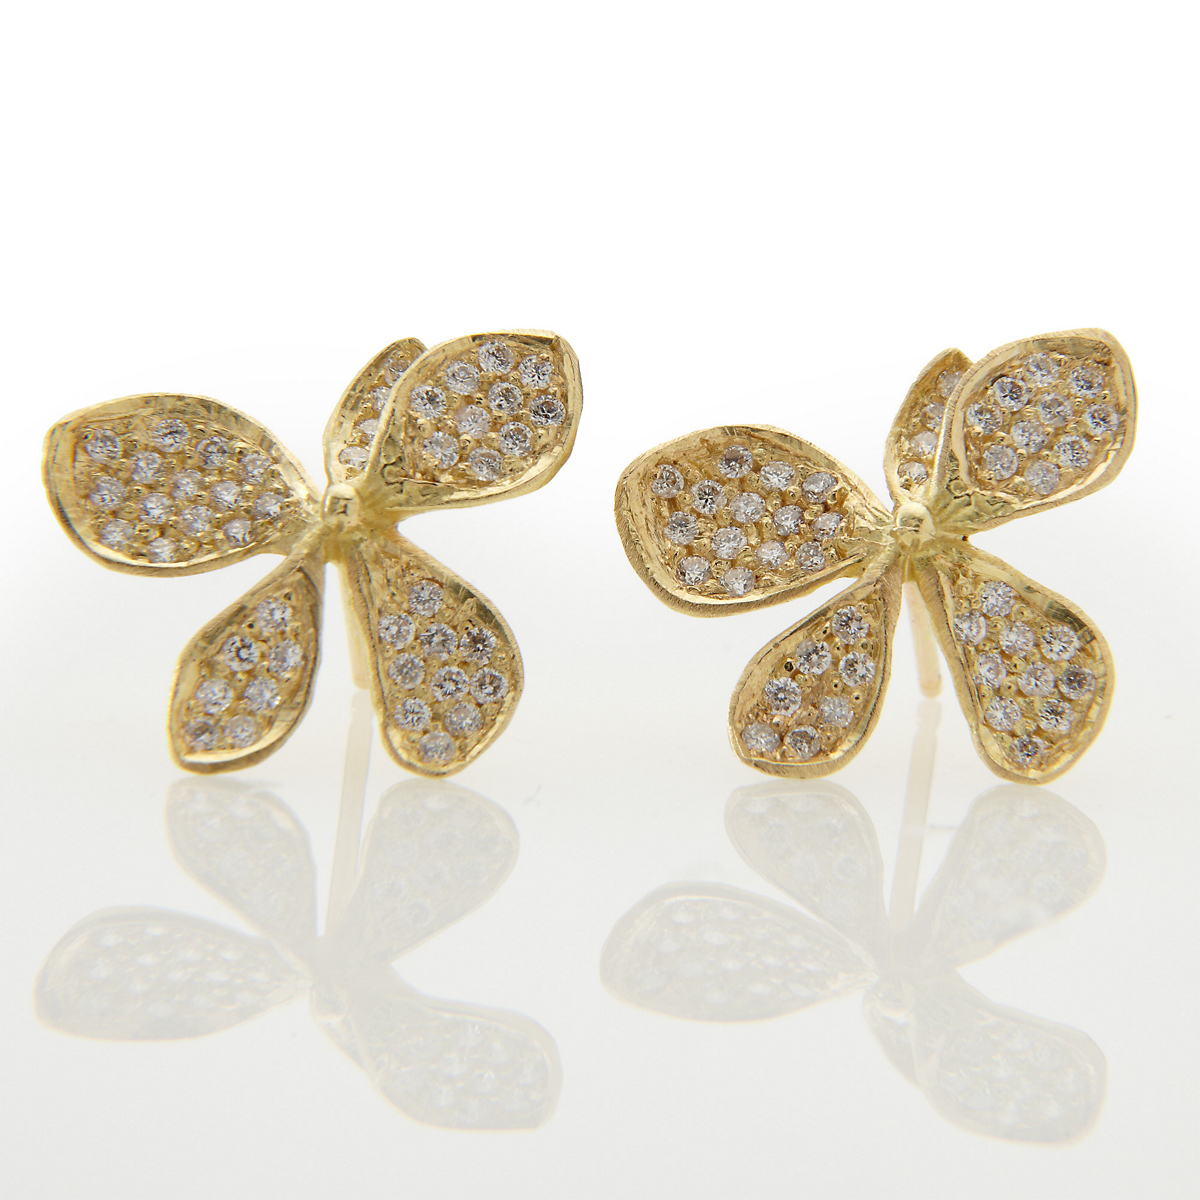 John Iversen Hydrangea Diamond Earrings